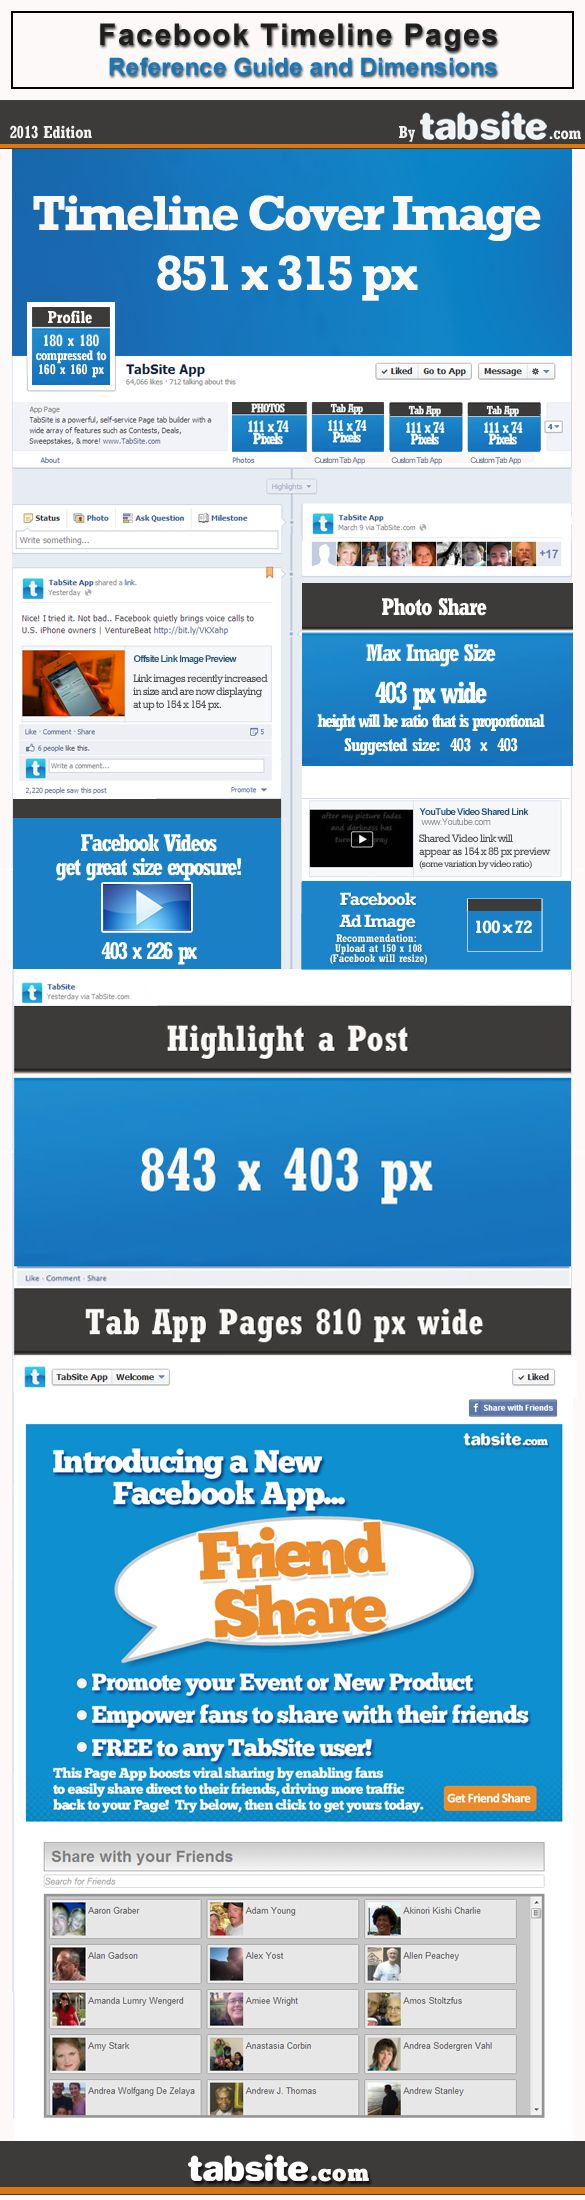 #Facebook Timeline #changes and size template. The Facebook pages have changed but the ONE constant is the value of images within Pages.  Images matter in posting, cover images are key to introducing a Page, and the size of images in links and video previews have been important updates by Facebook.  The #Infographic here showcases the size of the Facebook video preview images (403 x 226 px) much bigger compared to YouTube videos.